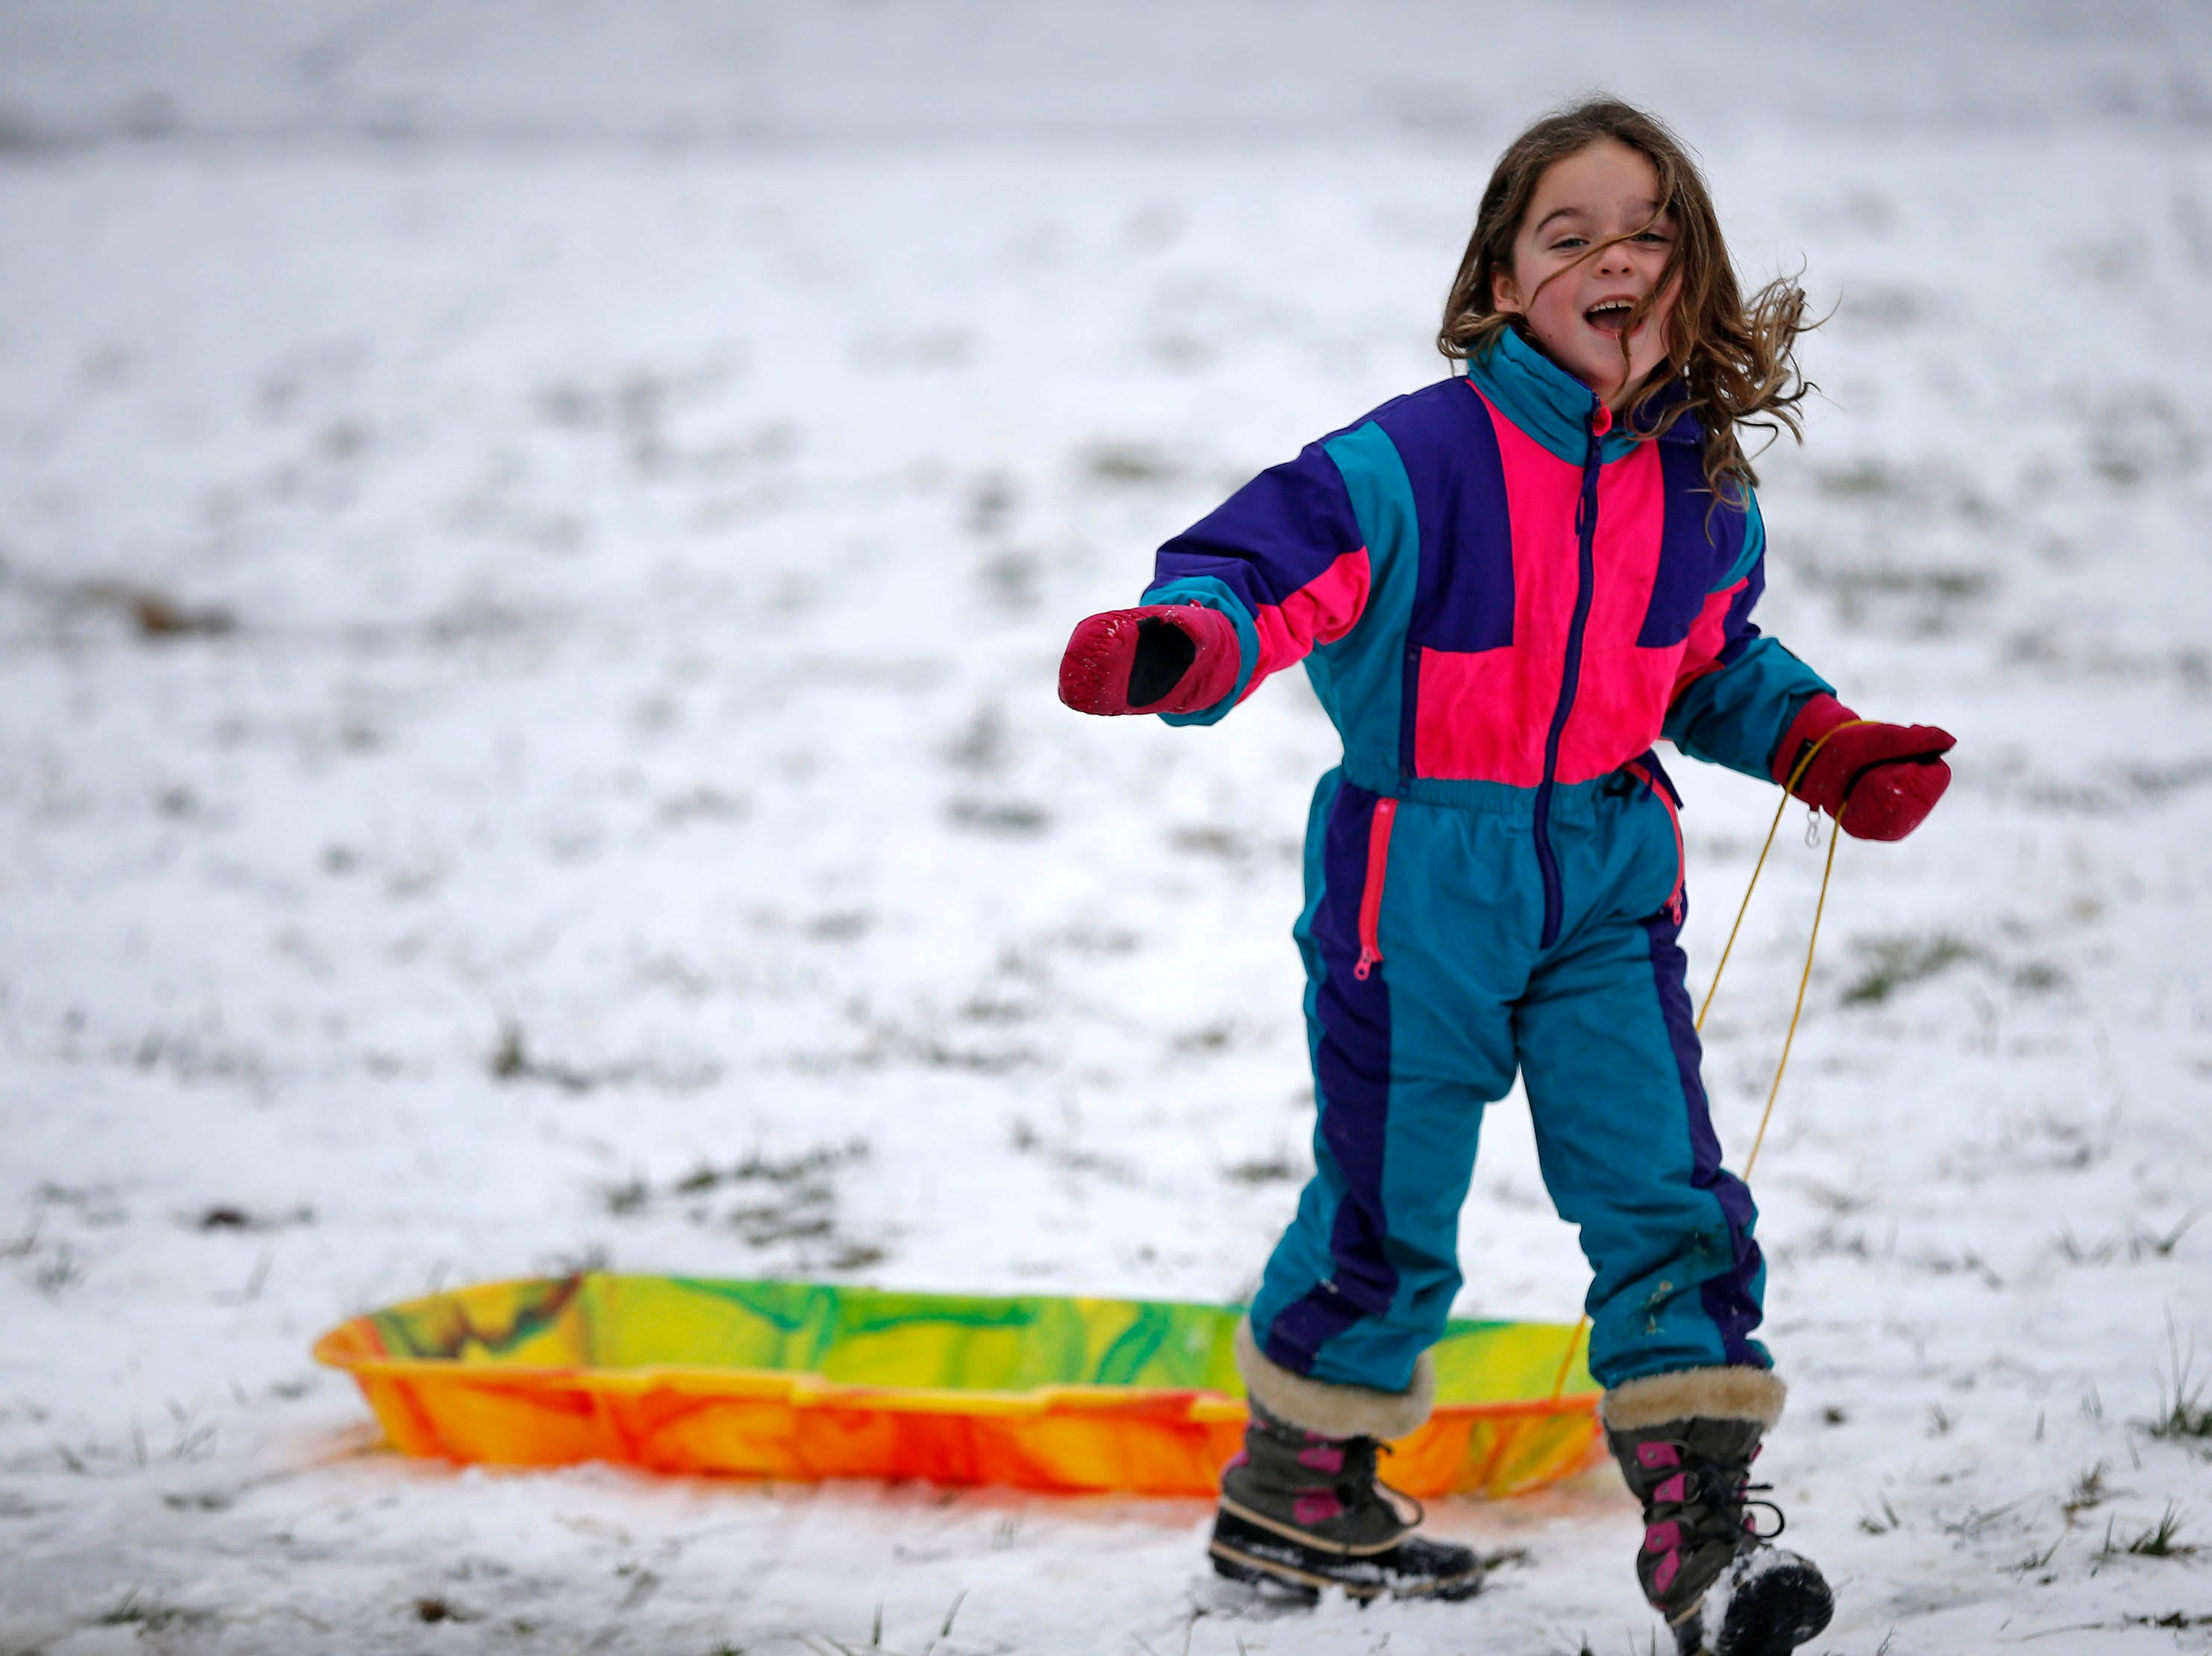 Becca Ryan, 7, of Columbia Tusculum, laughs after turning up hill to take another sled ride at Ault Park in the Hyde Park neighborhood of Cincinnati on Saturday, Jan. 12, 2019. A winter storm warning remained in effect until 7 A.M. Sunday after the region experienced the first snowfall of 2019.